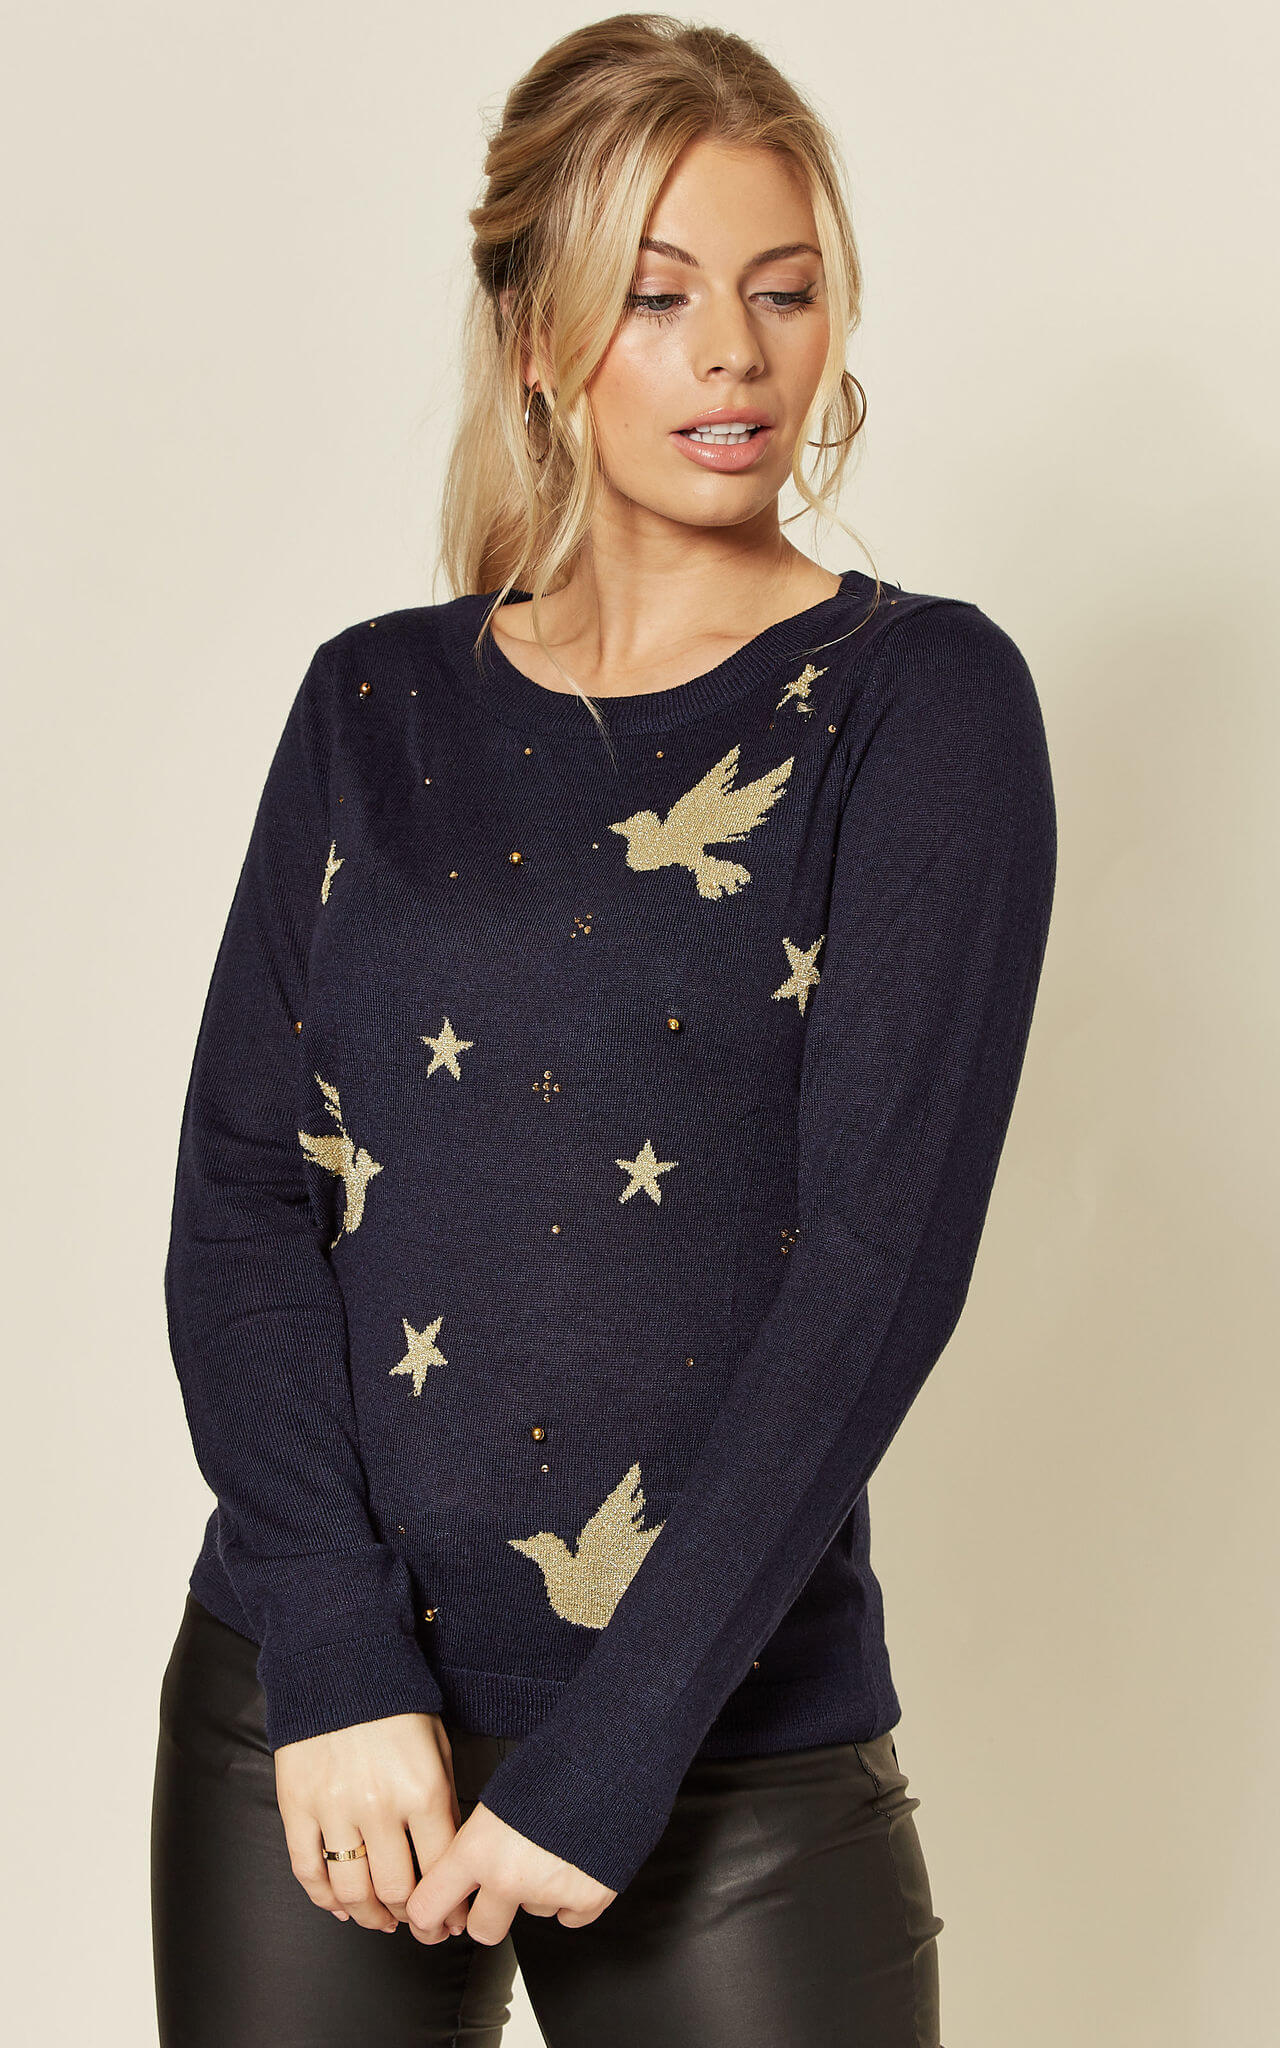 Model wears a navy jumper with gold glittery doves and bell motifs